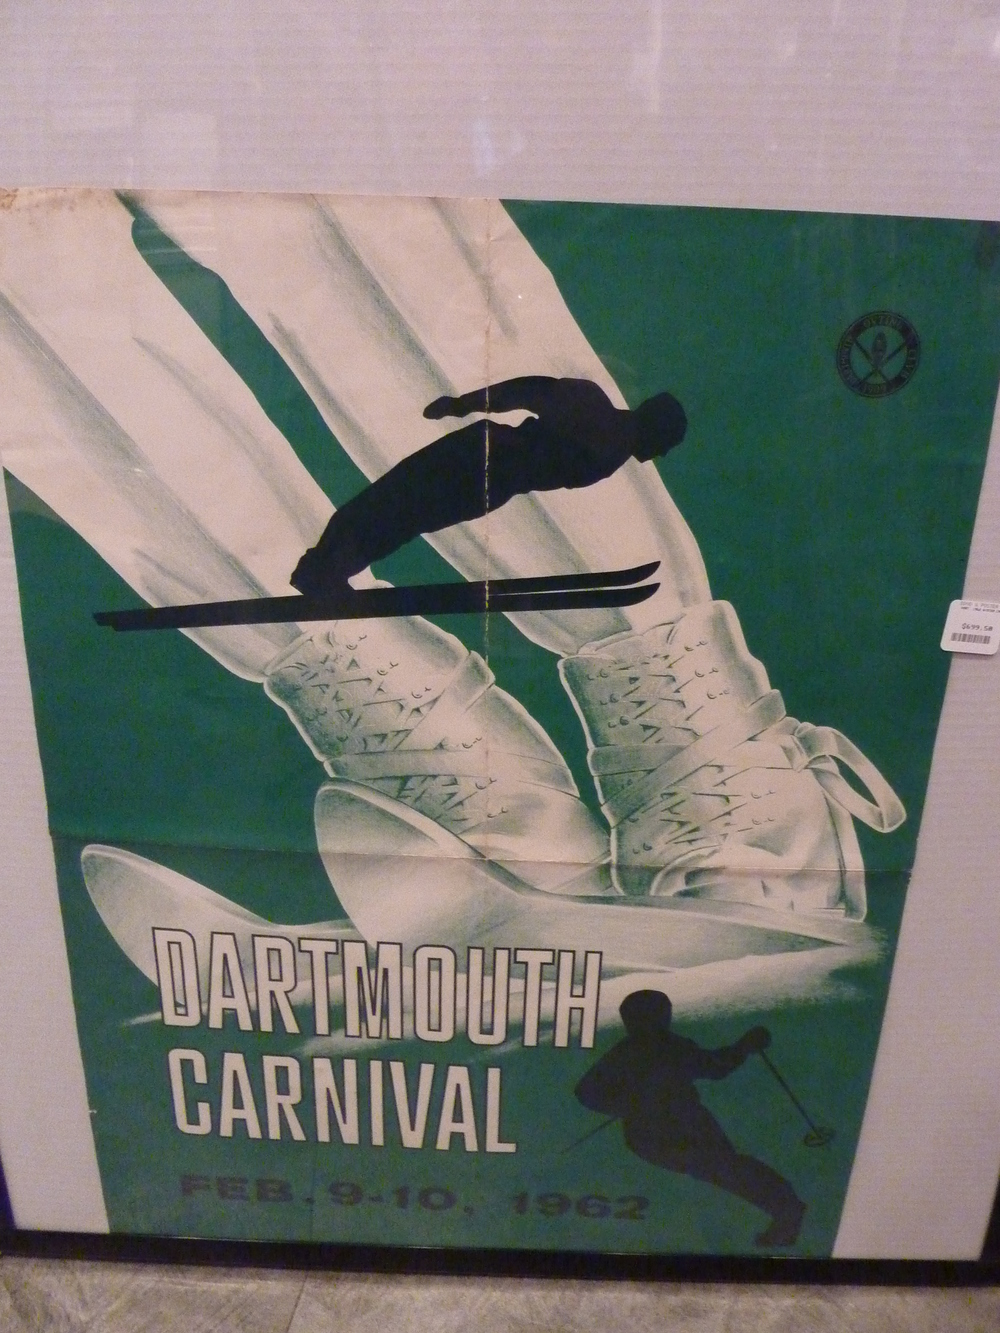 Dartmouth Winter Carnival 1962 (green)